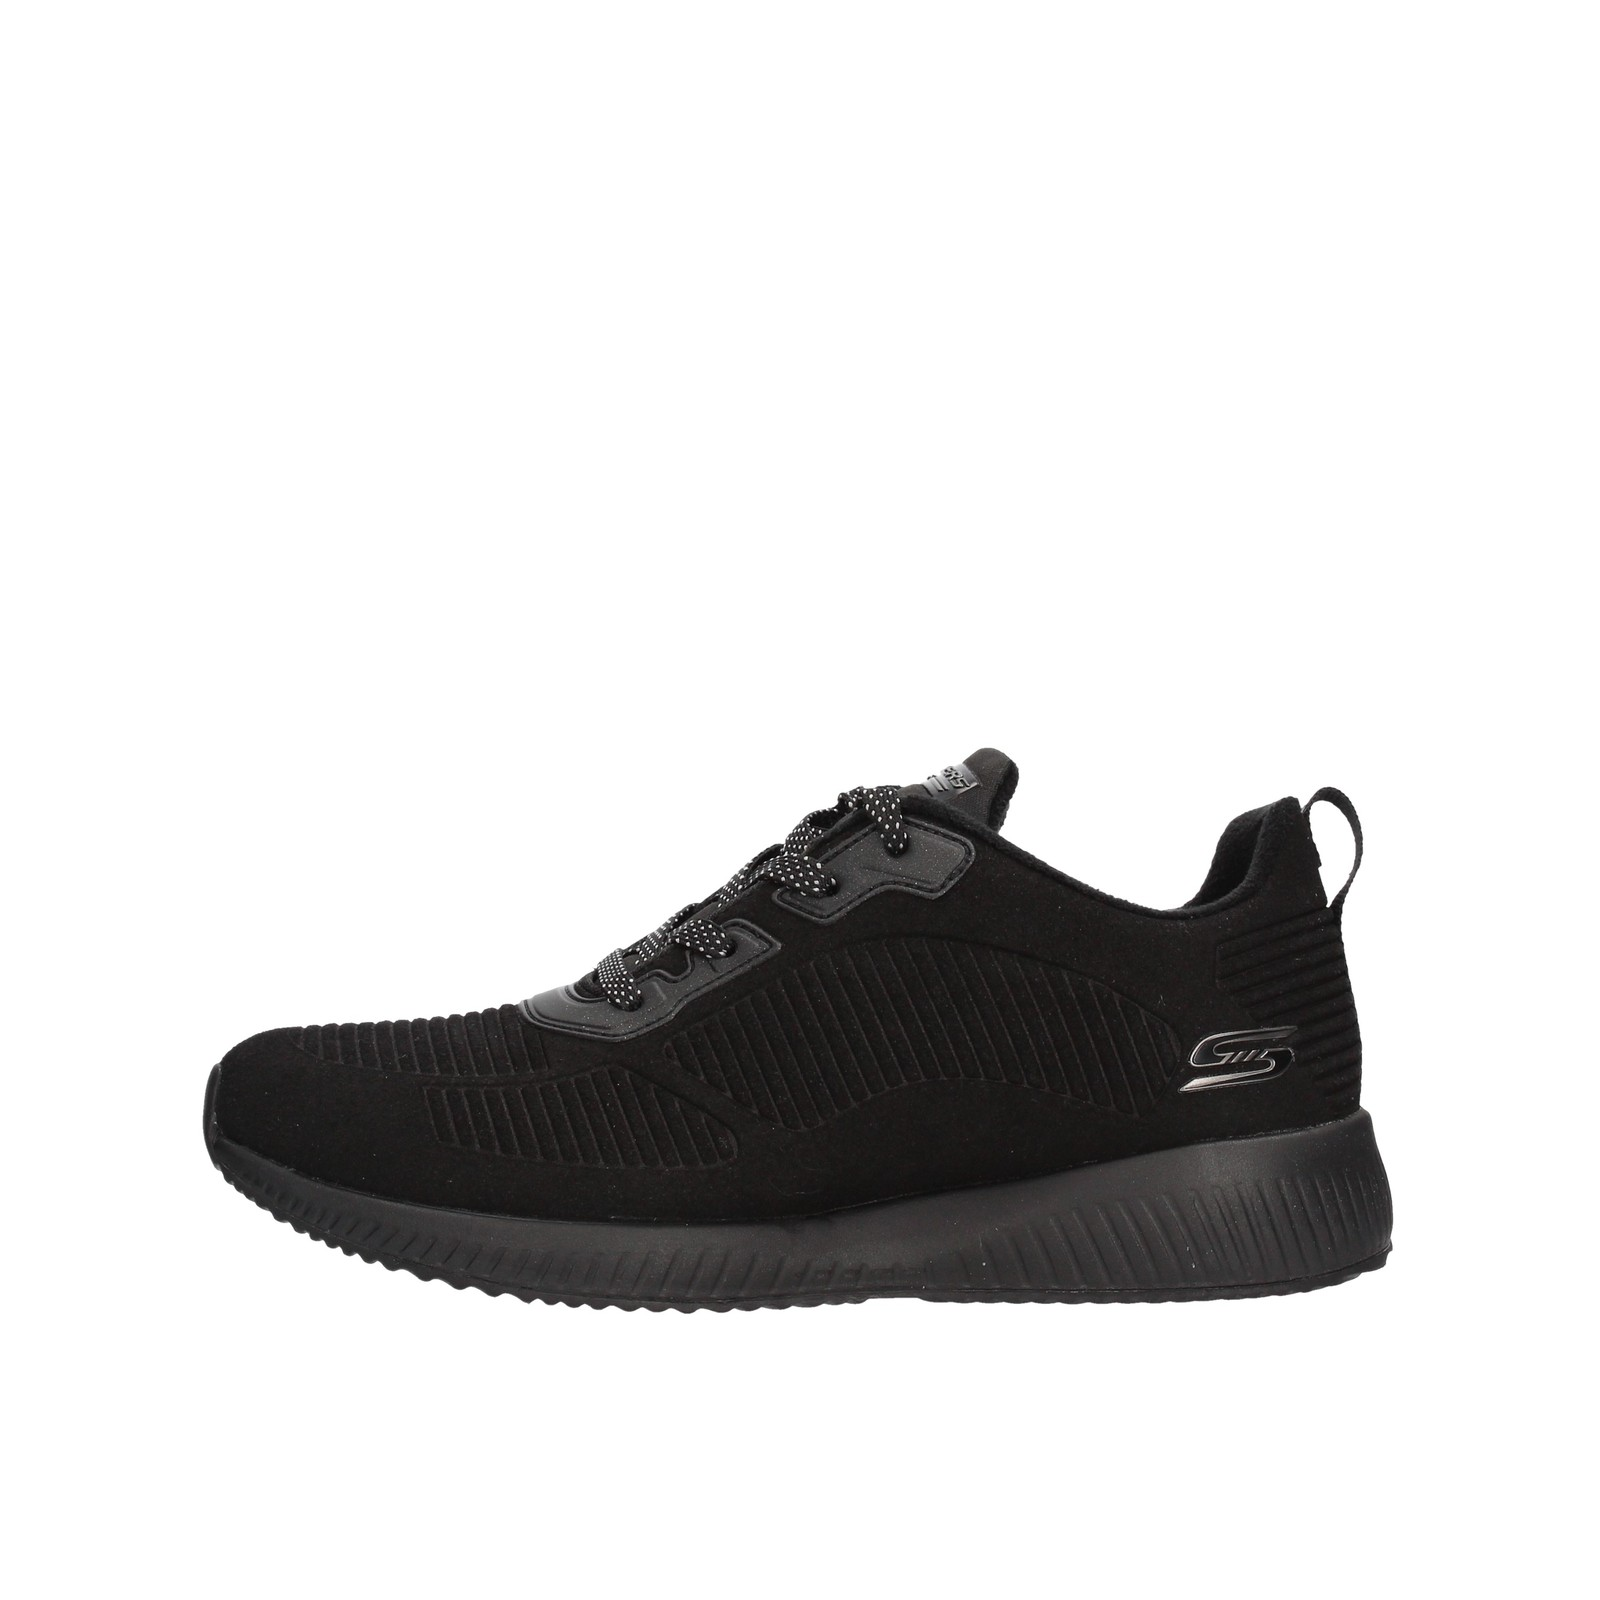 Skechers - Team boss nero 32505 BBK - $54.45